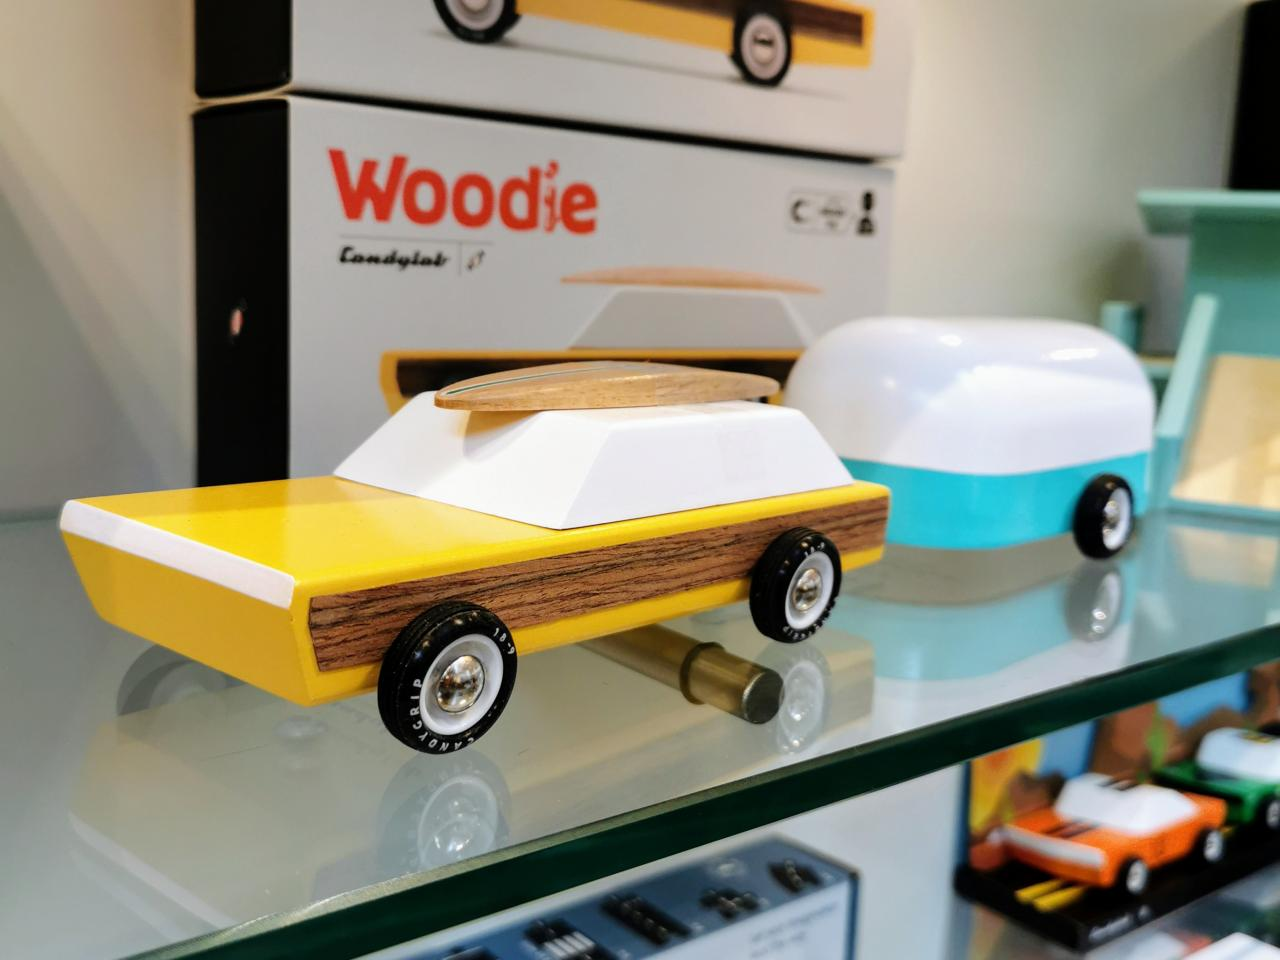 Candylab Woodie